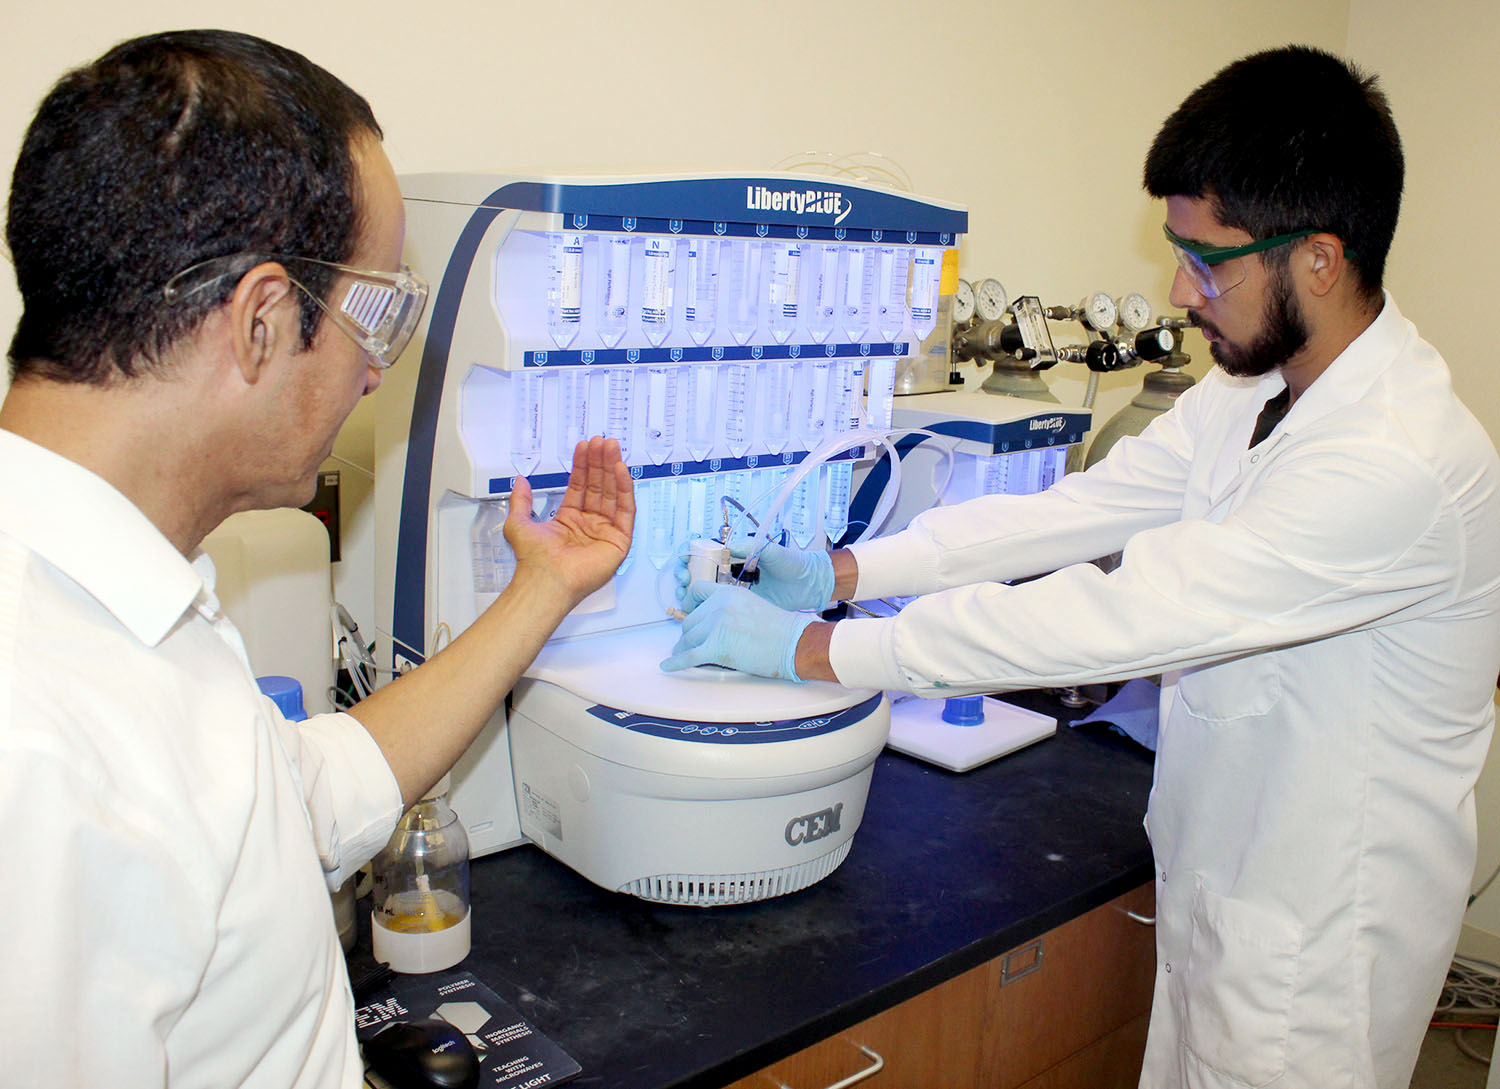 UNK chemistry professor Hector Palencia, left, works with Emerson Francisco Arias last summer during a faculty-led research project. Francisco Arias, a student at the Autonomous University of Nayarit in Mexico, spent seven weeks at UNK through the DELFIN research program. (Courtesy photos)